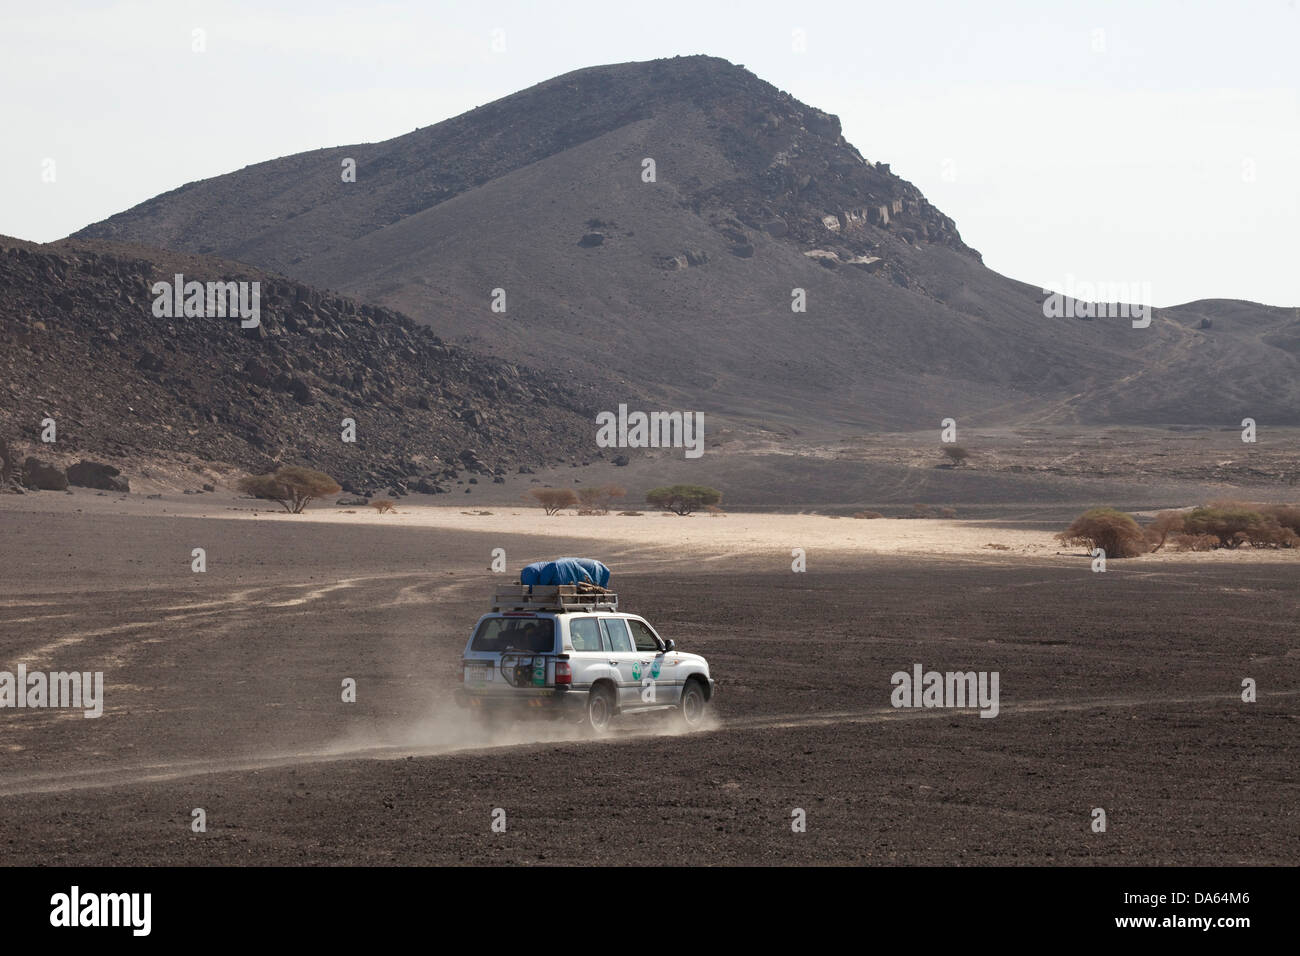 Expedition, vehicle, vessel, car, automobile, cross-country, vehicle, volcanic, area, Africa, Djibouti, - Stock Image